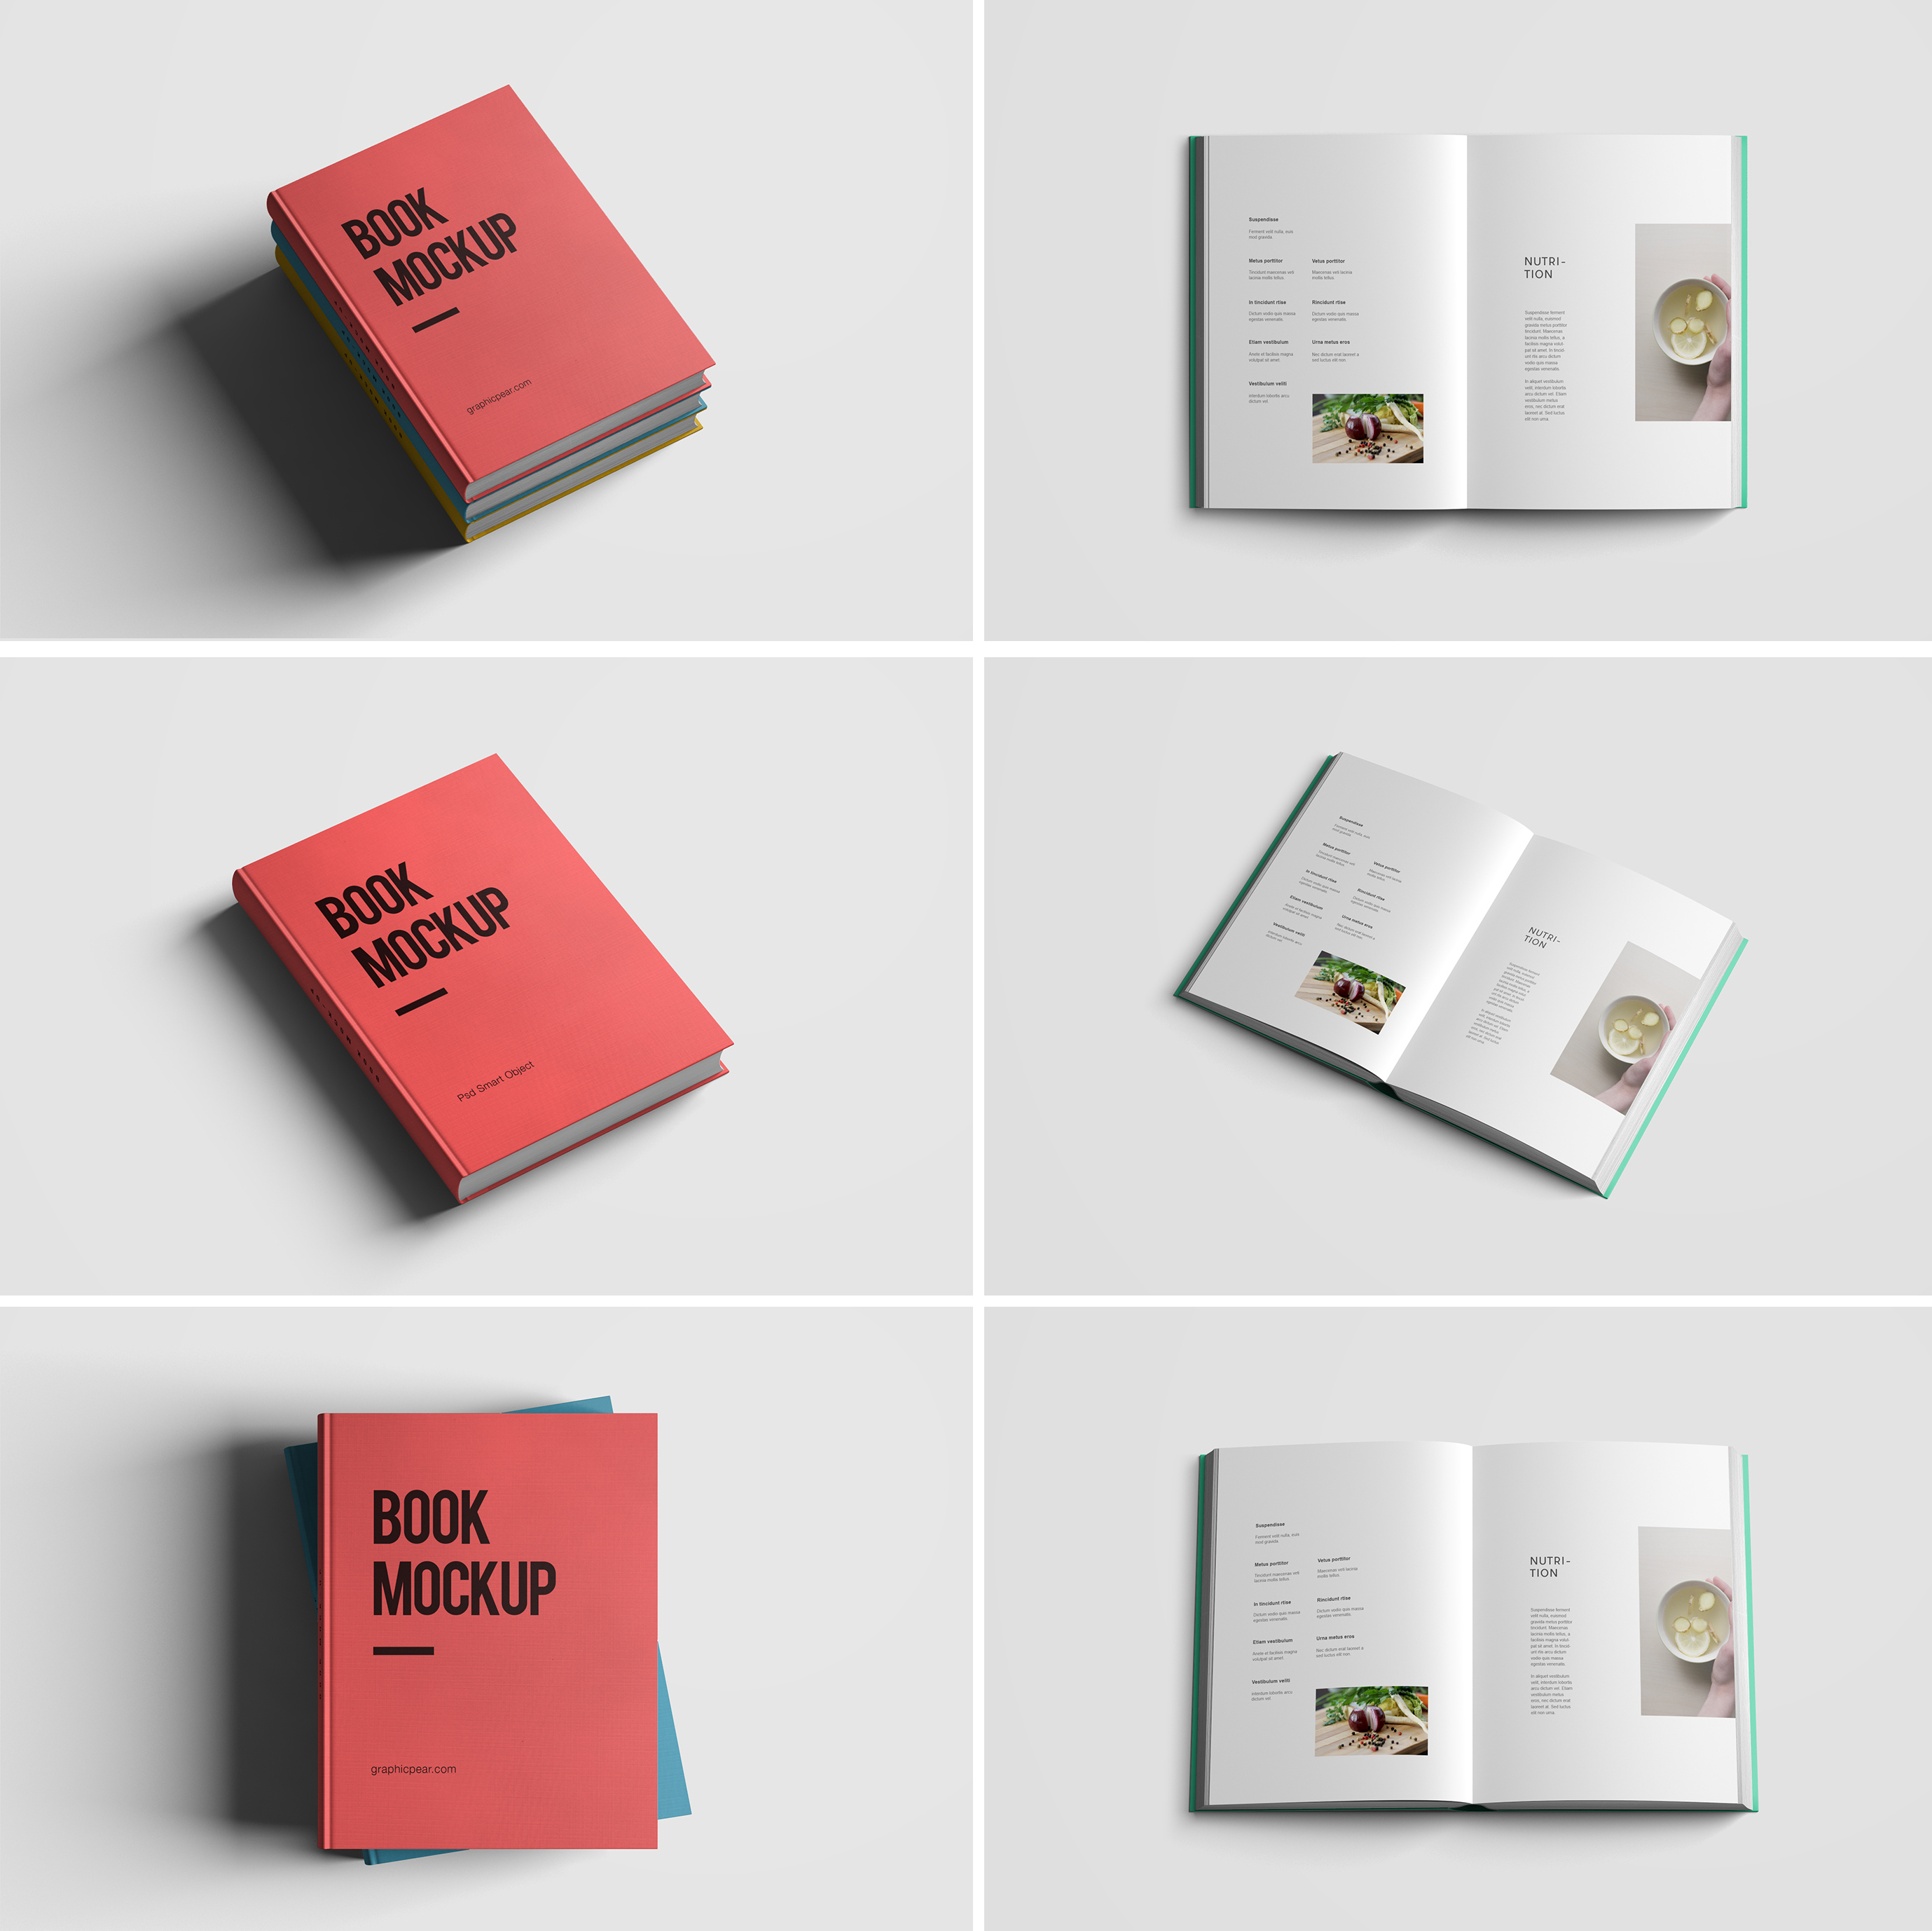 mockup-gratis-book-libro-free-download-03b